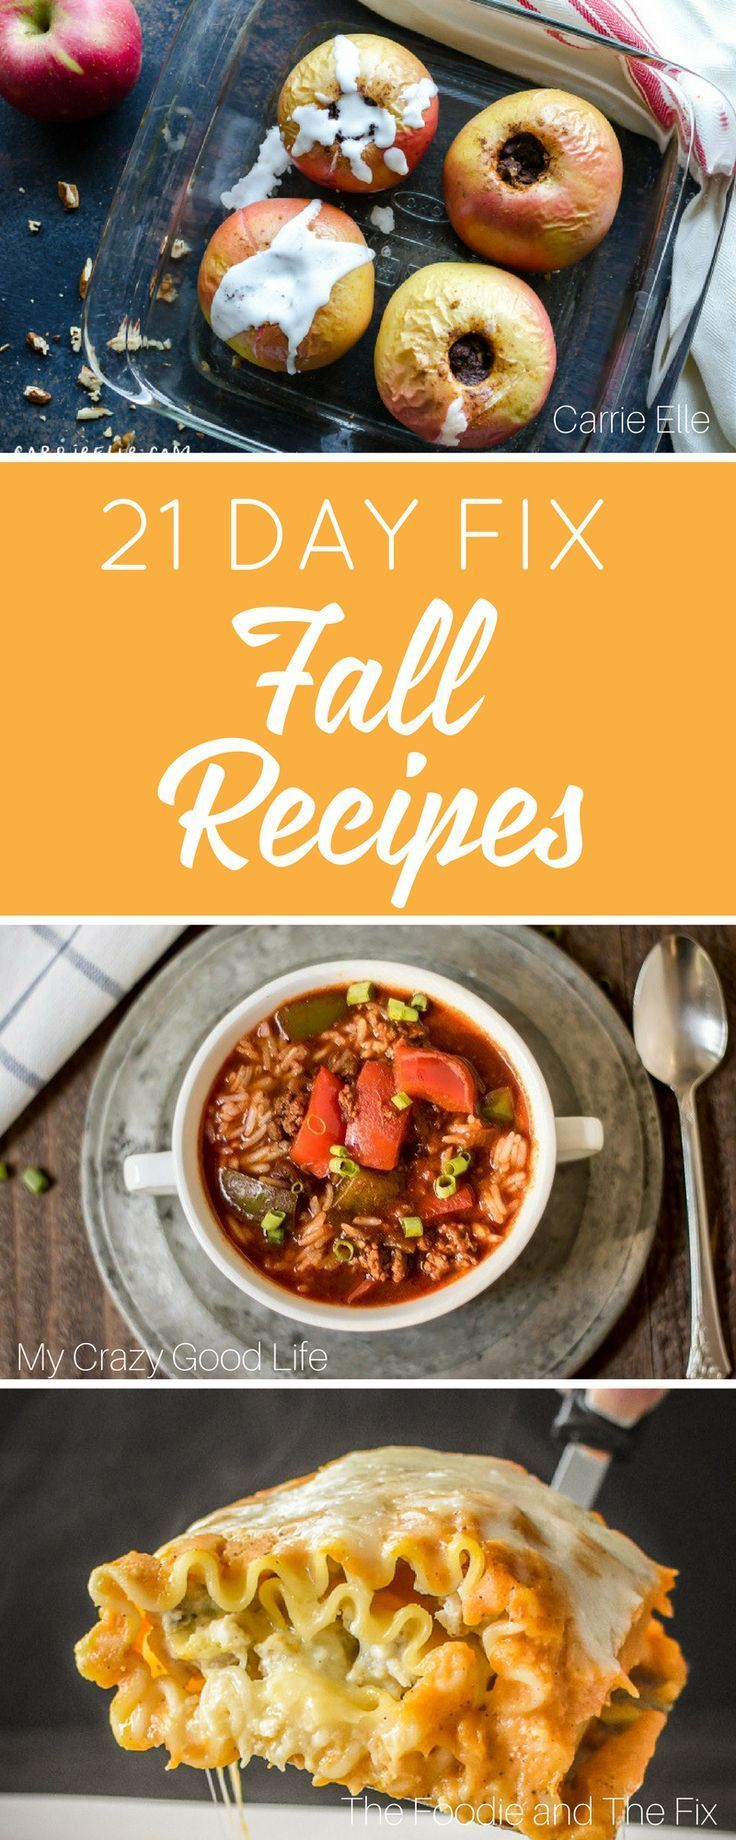 Looking for some 21 Day Fix Fall Recipes? Here are fall desserts, fall dinners, and fall drinks–all 21 Day Fix approved! 21 Day Fix Pumpkin | 21 Day Fix Apple Recipes | 21 Day Fix Zucchini Recipes | All recipes have container counts!